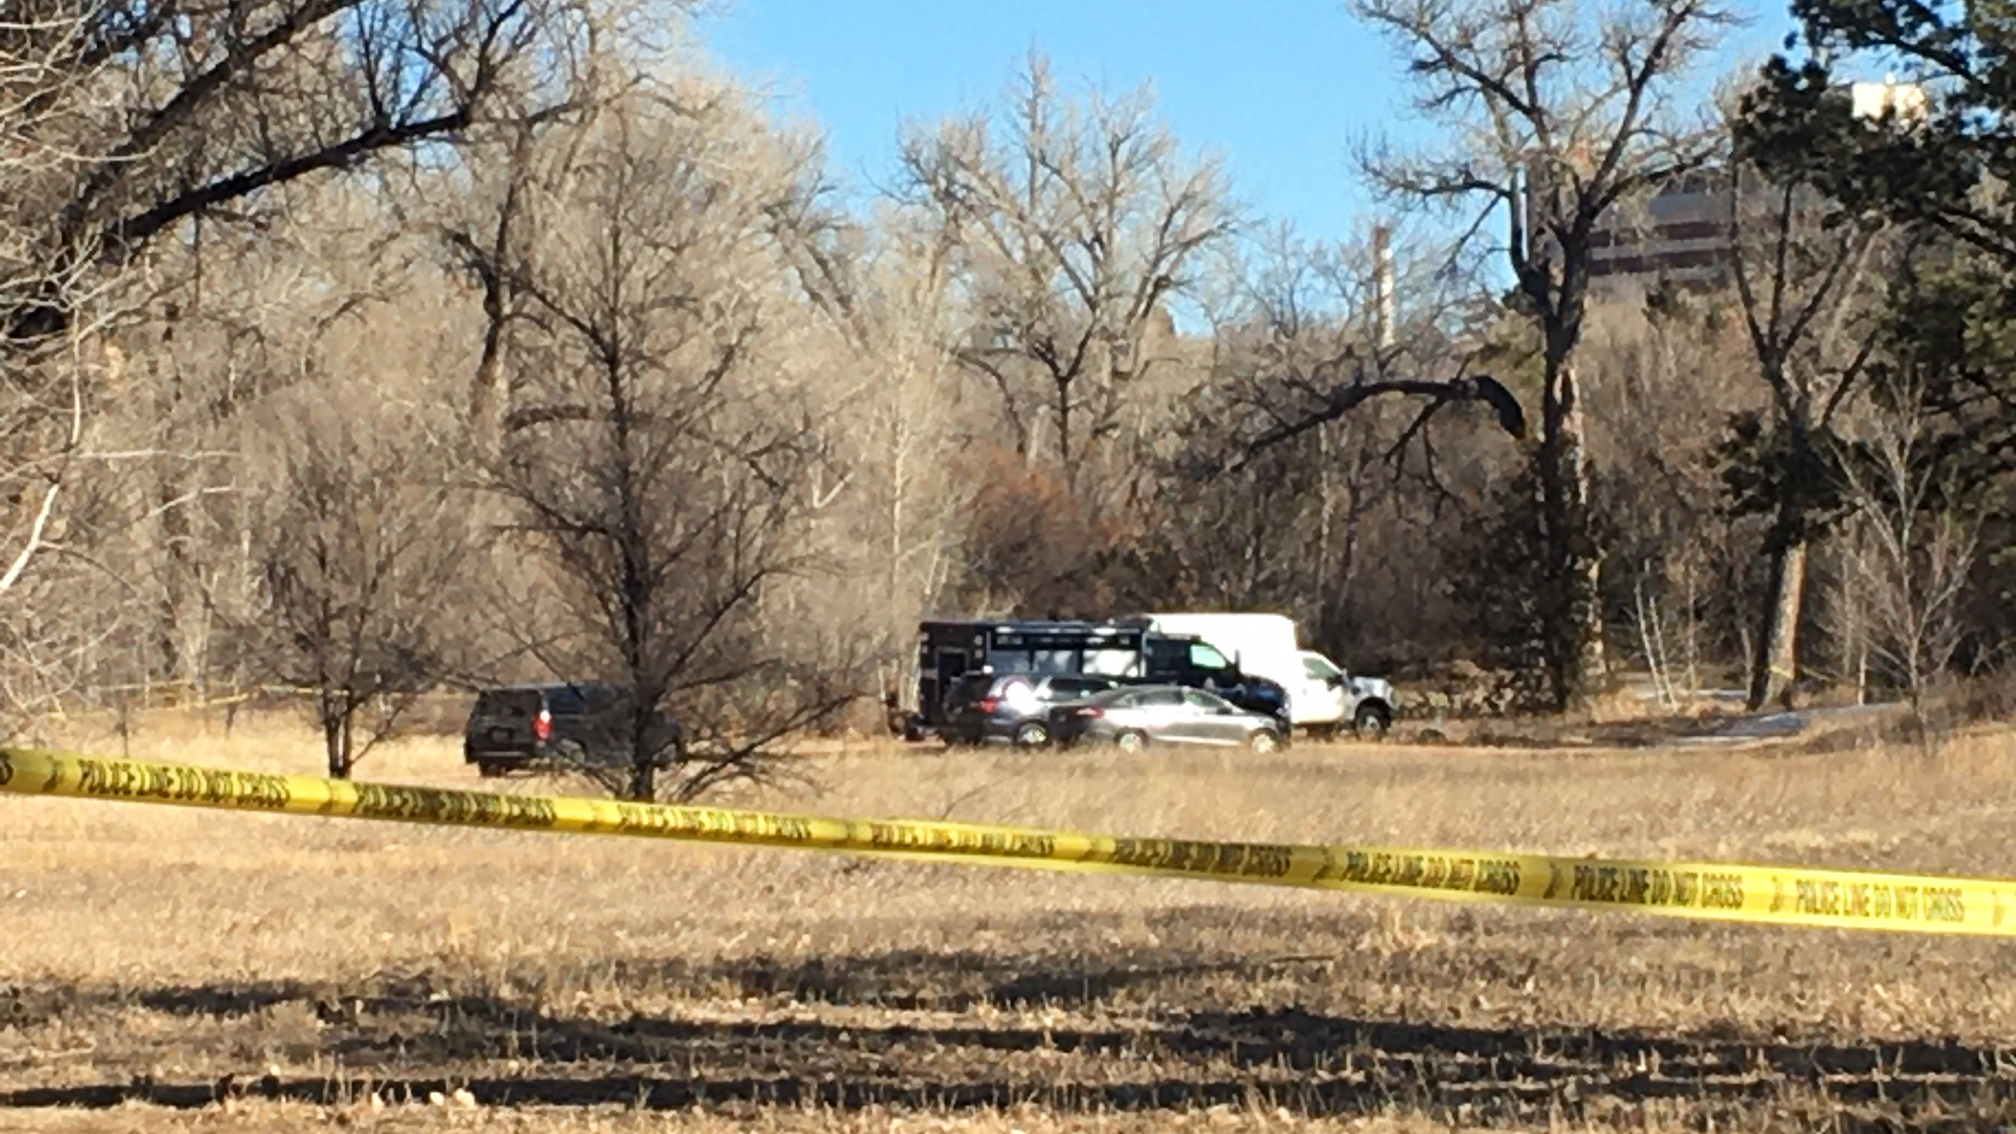 Police investigate after human remains were found in the north end of Monument Valley Park. / Mike Duran - FOX21 News